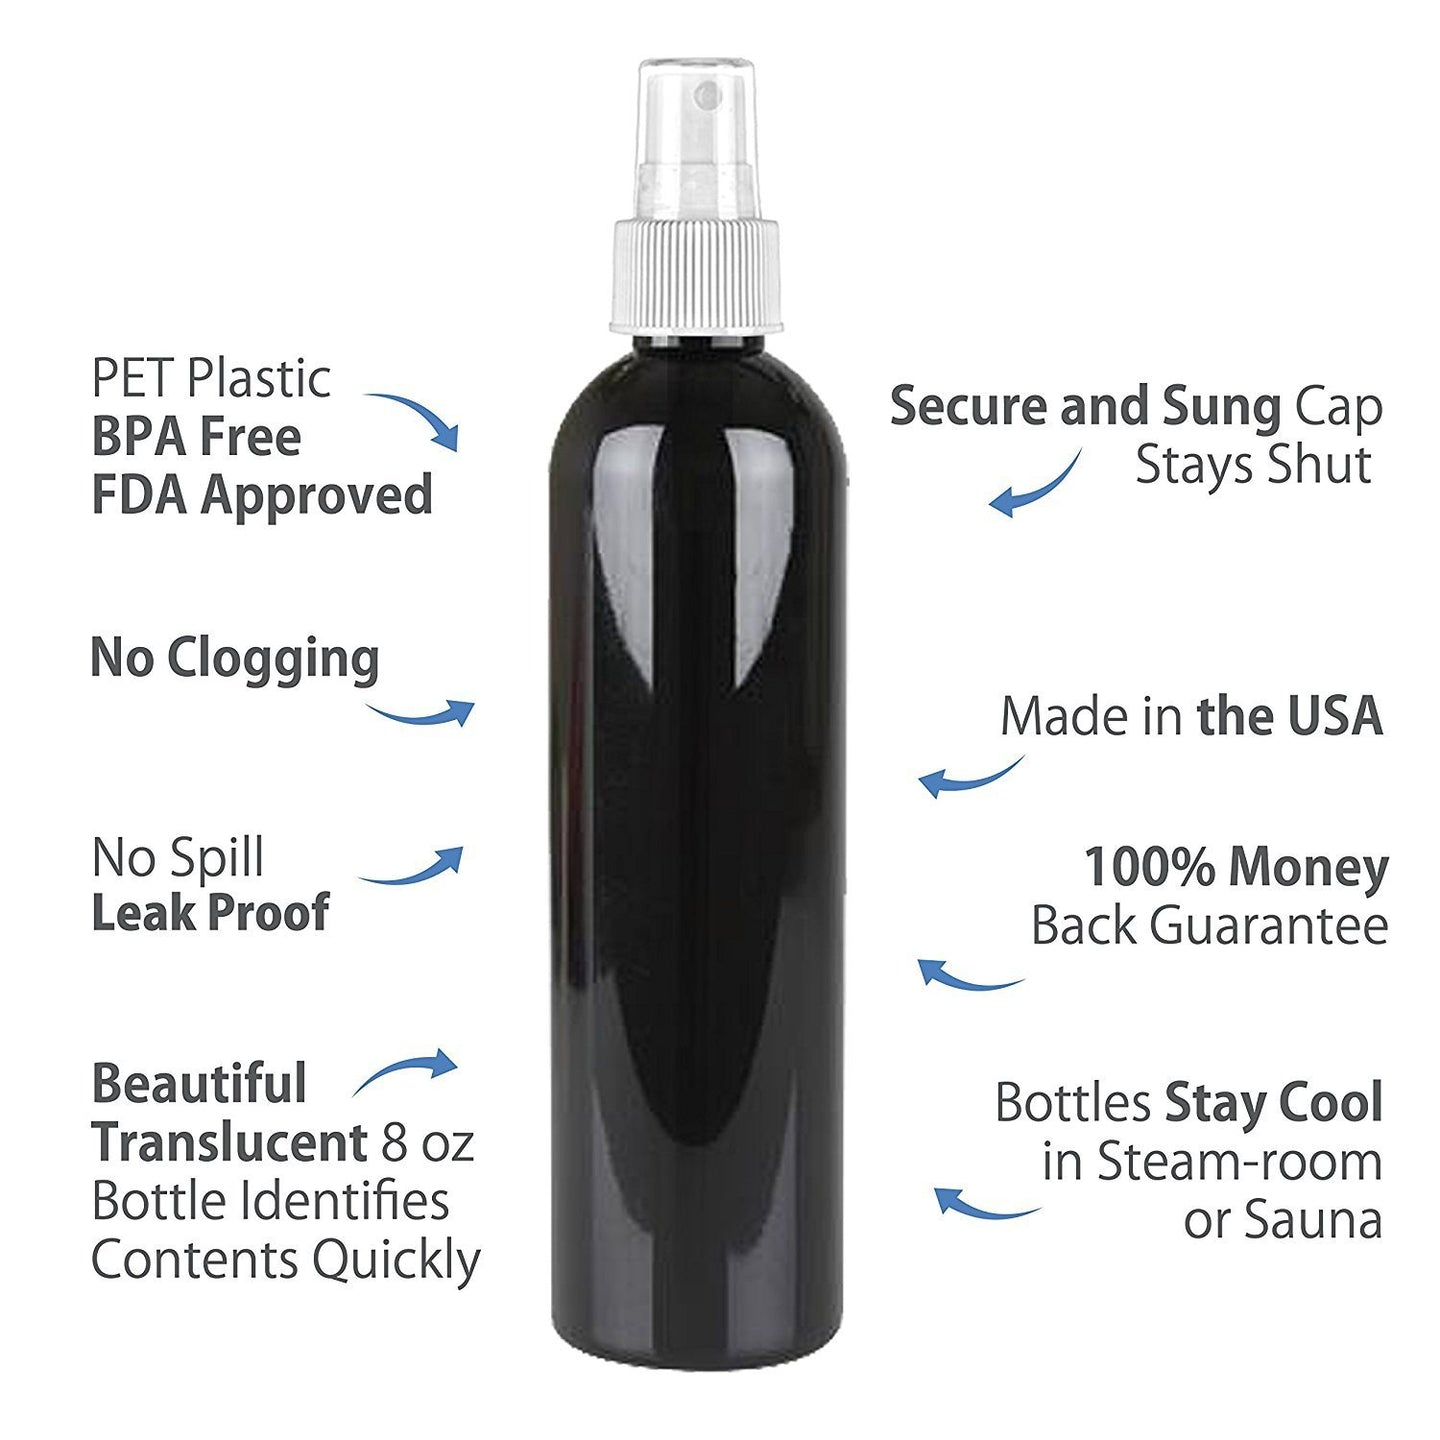 MoYo Natural Labs 8 oz Spray Bottles, Fine Mist Empty Travel Containers, BPA Free PET Plastic for Essential Oils and Liquids/Cosmetics (2 pack, Black)